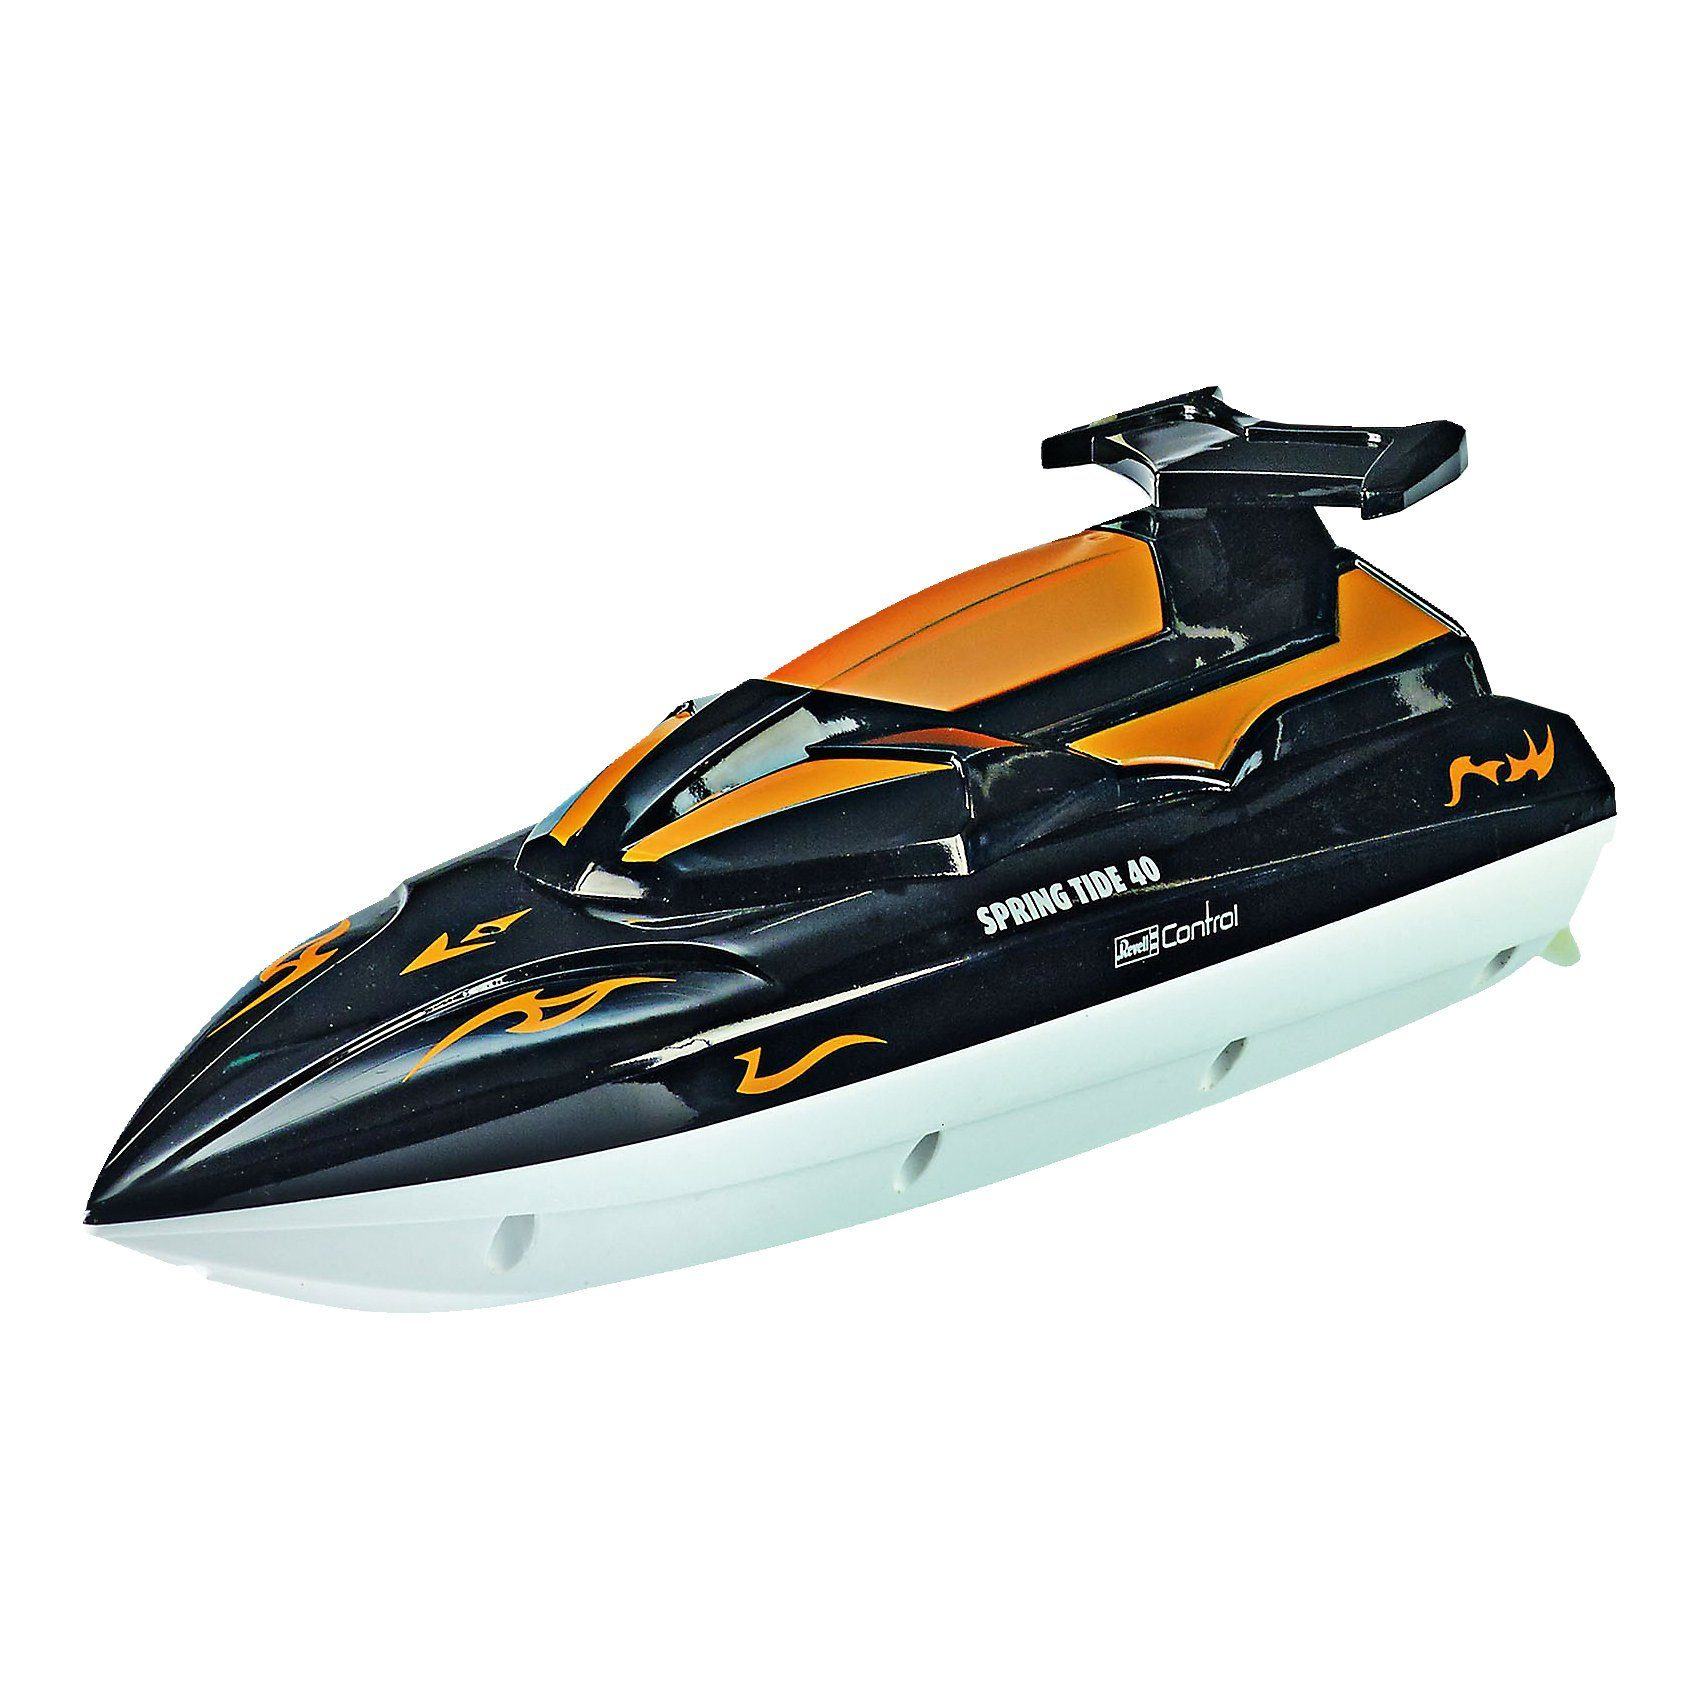 Revell® Control RC Boot Spring Tide 40 MHz